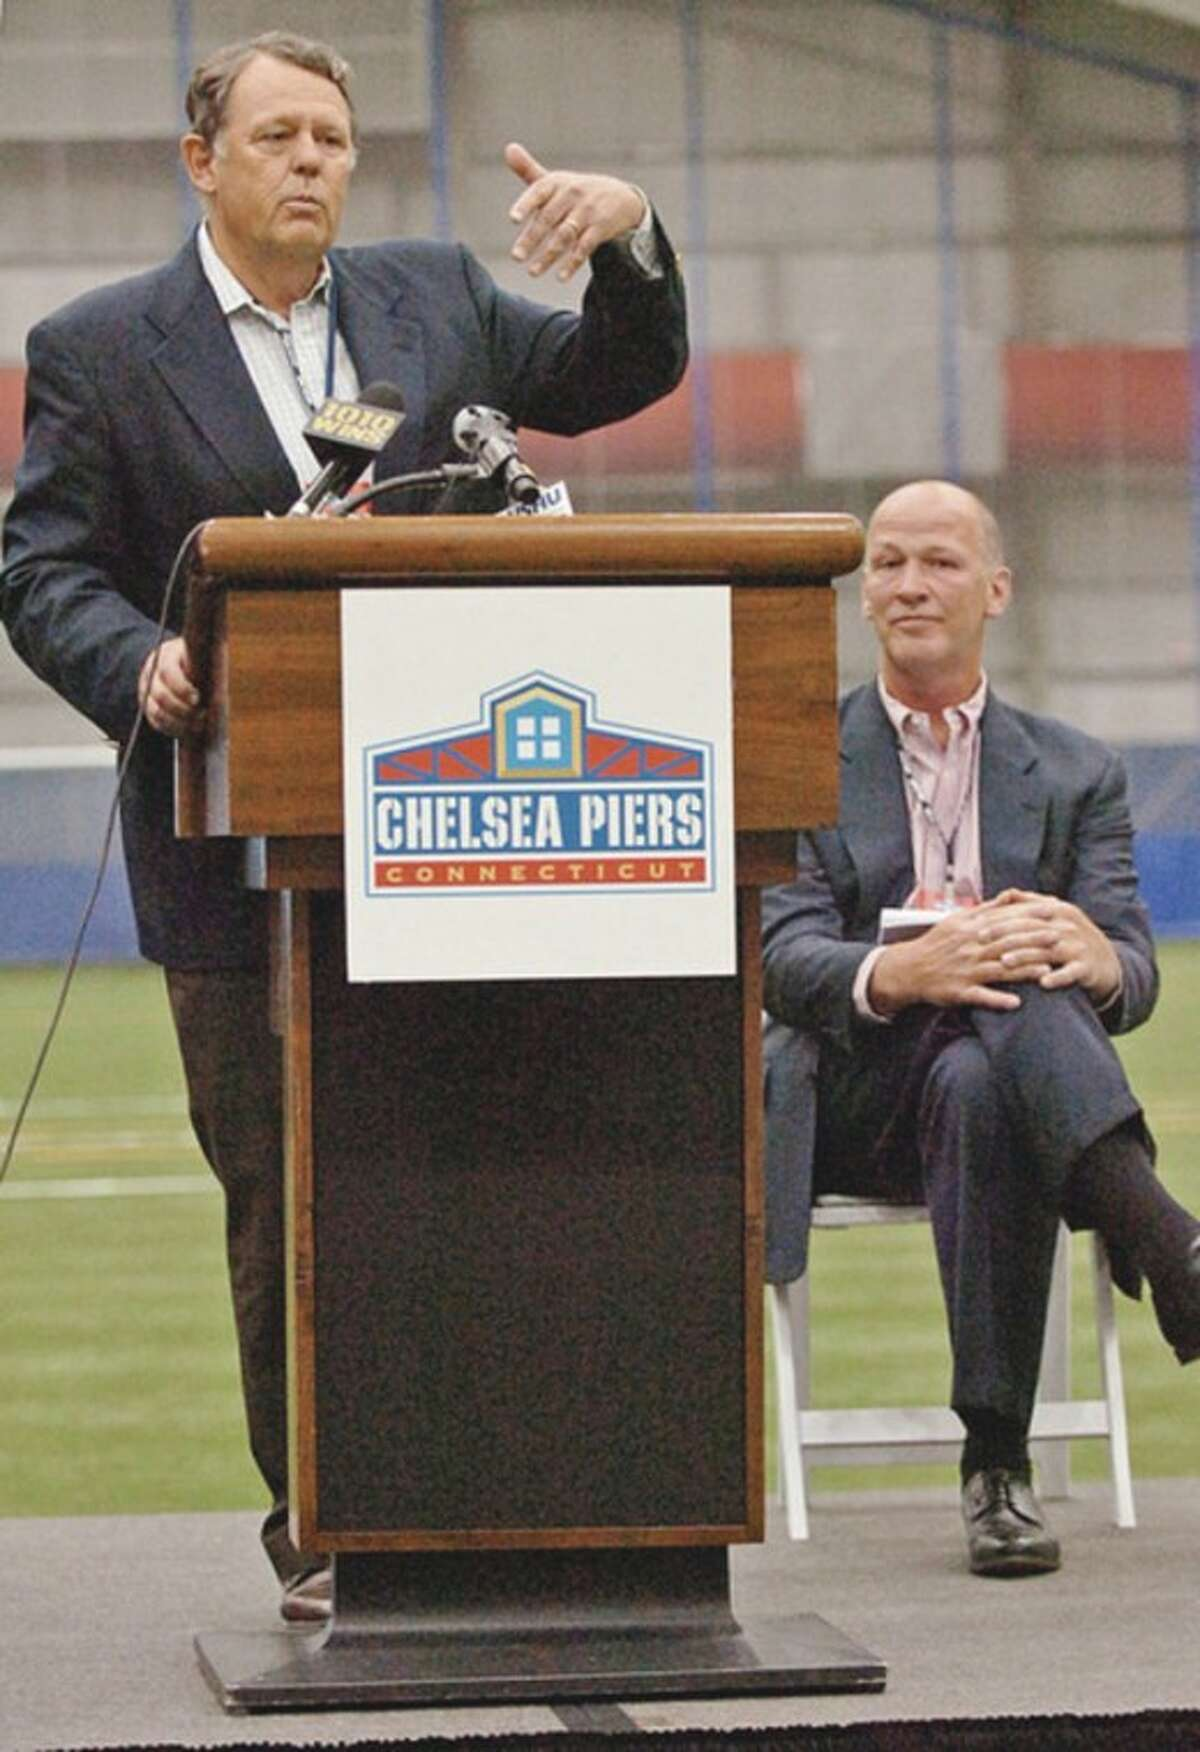 Roland W. Betts, Chairman Chelsea Piers, speaks during the grand opening ceremonies at the New Chelsea Piers CT in Stamford Thursday. Hour photo / Erik Trautmann